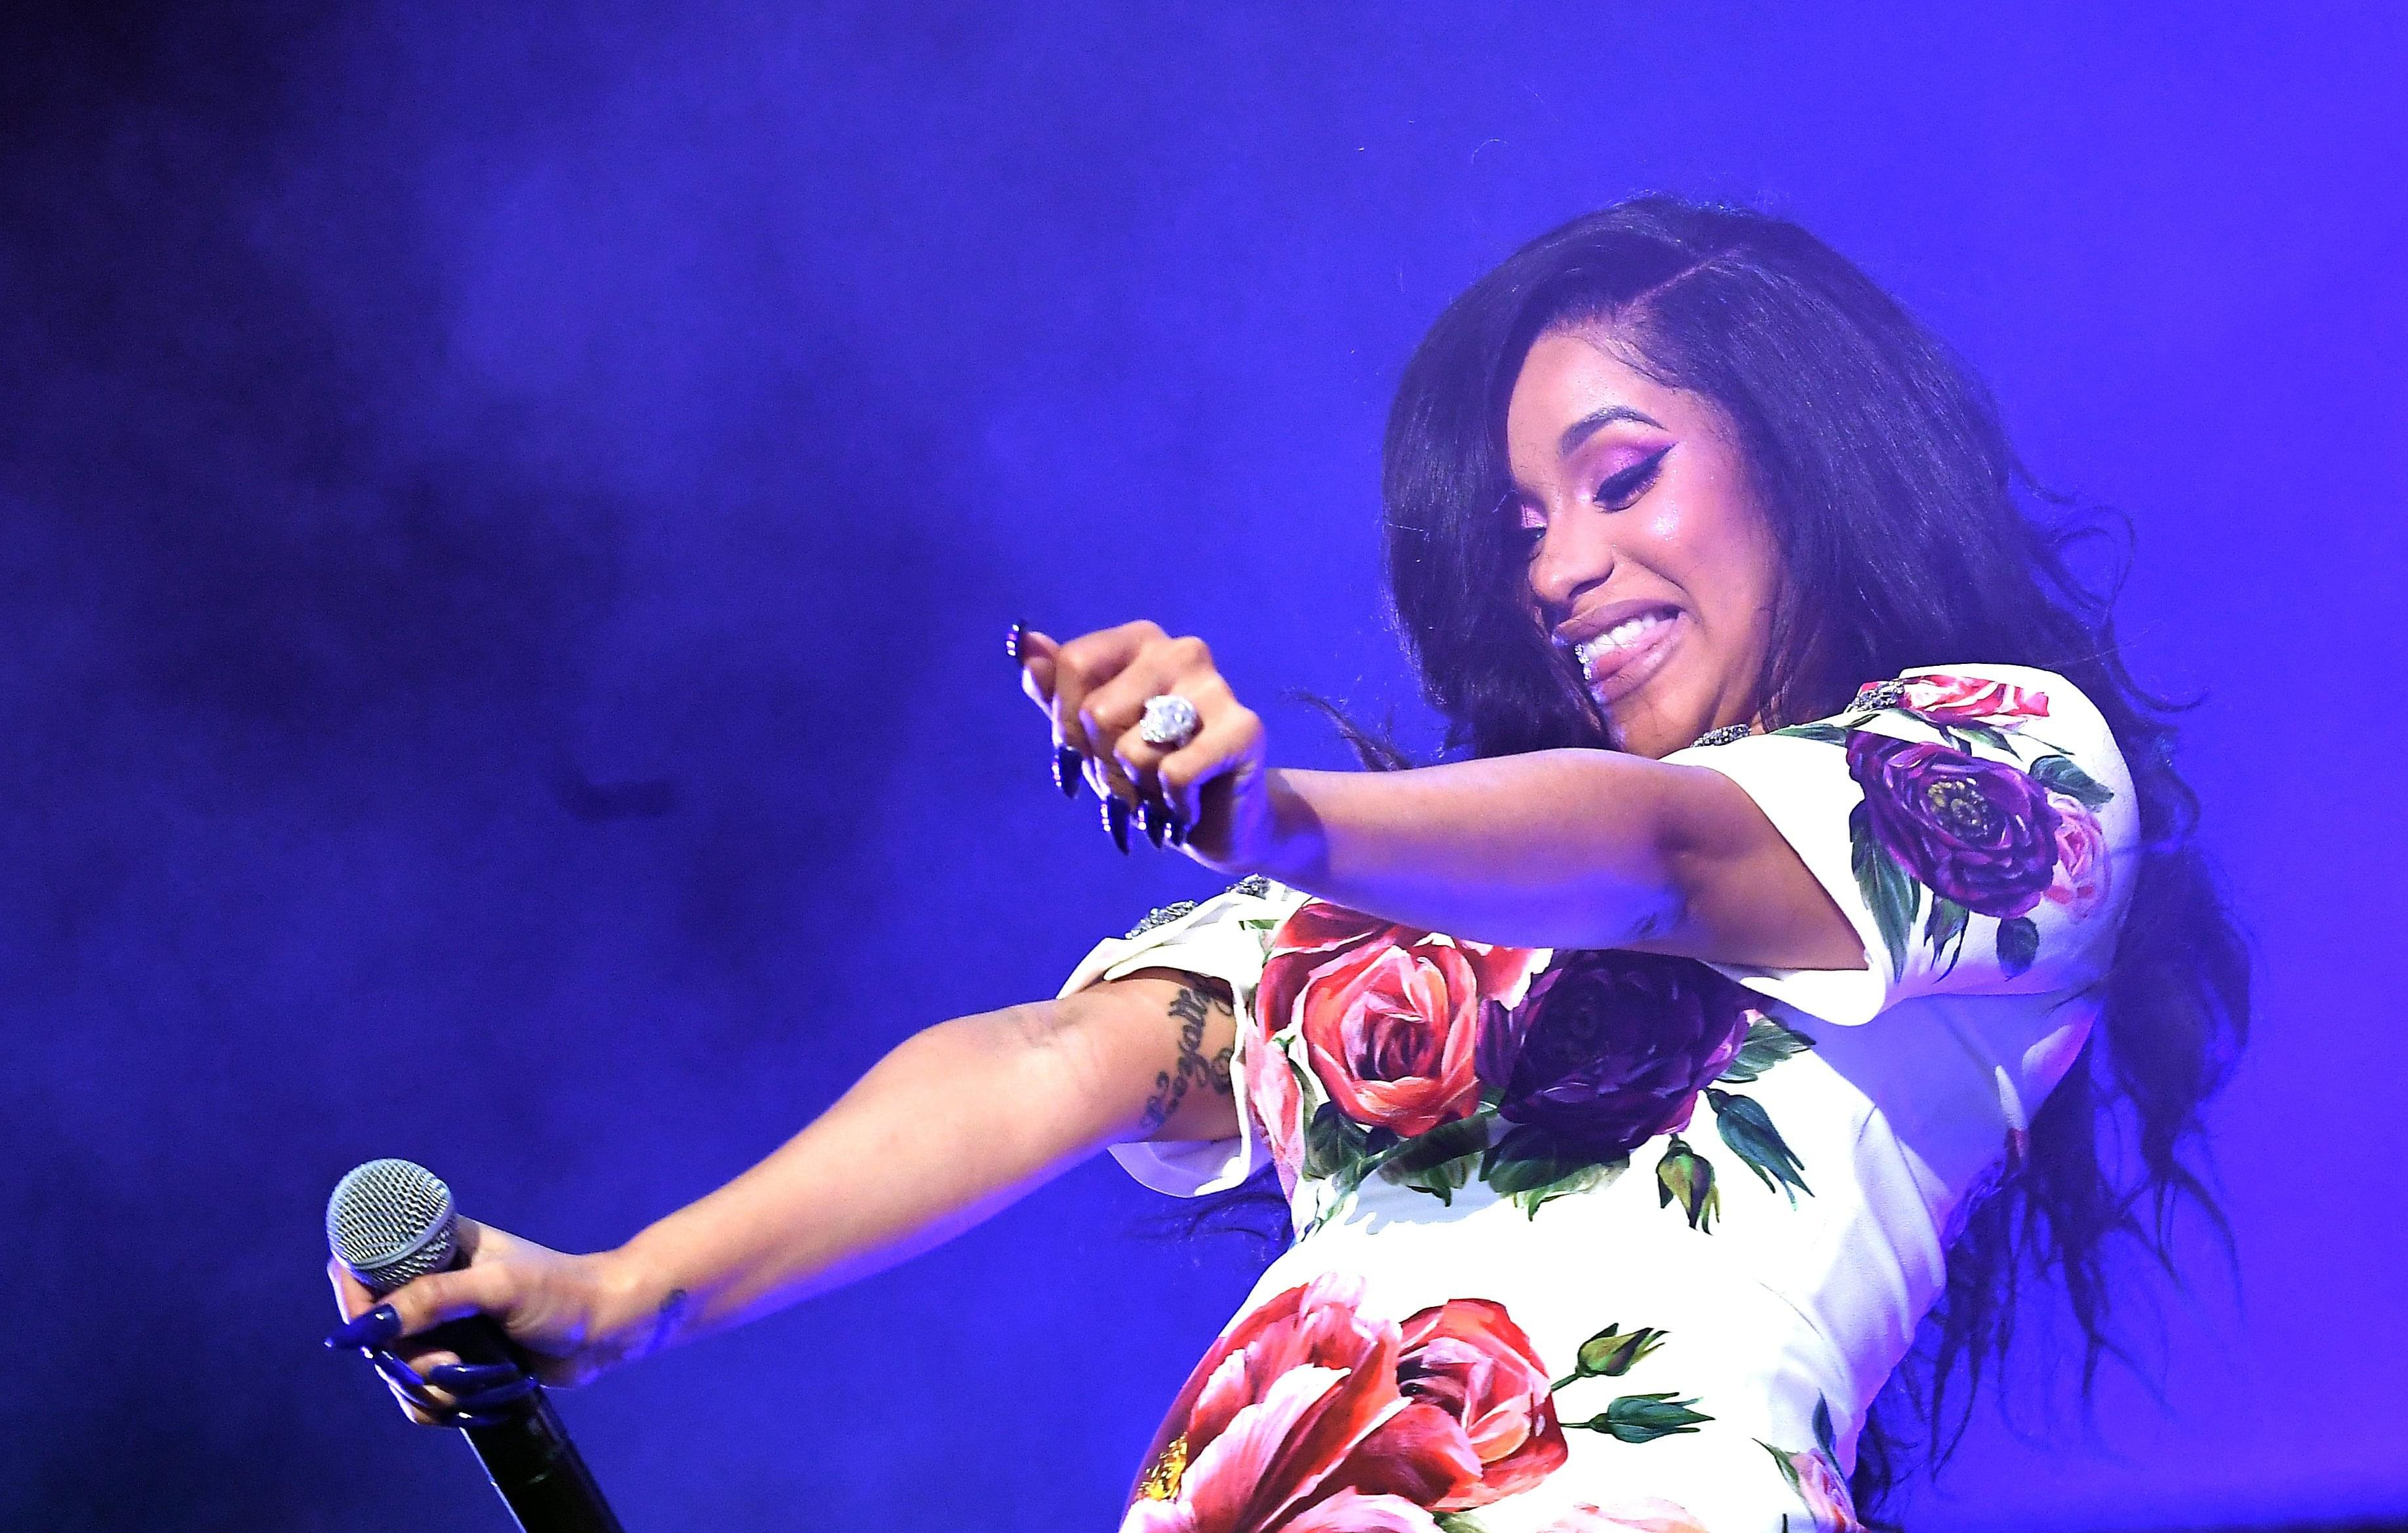 Cardi B Shares First Photo Of Her Daughter Kulture